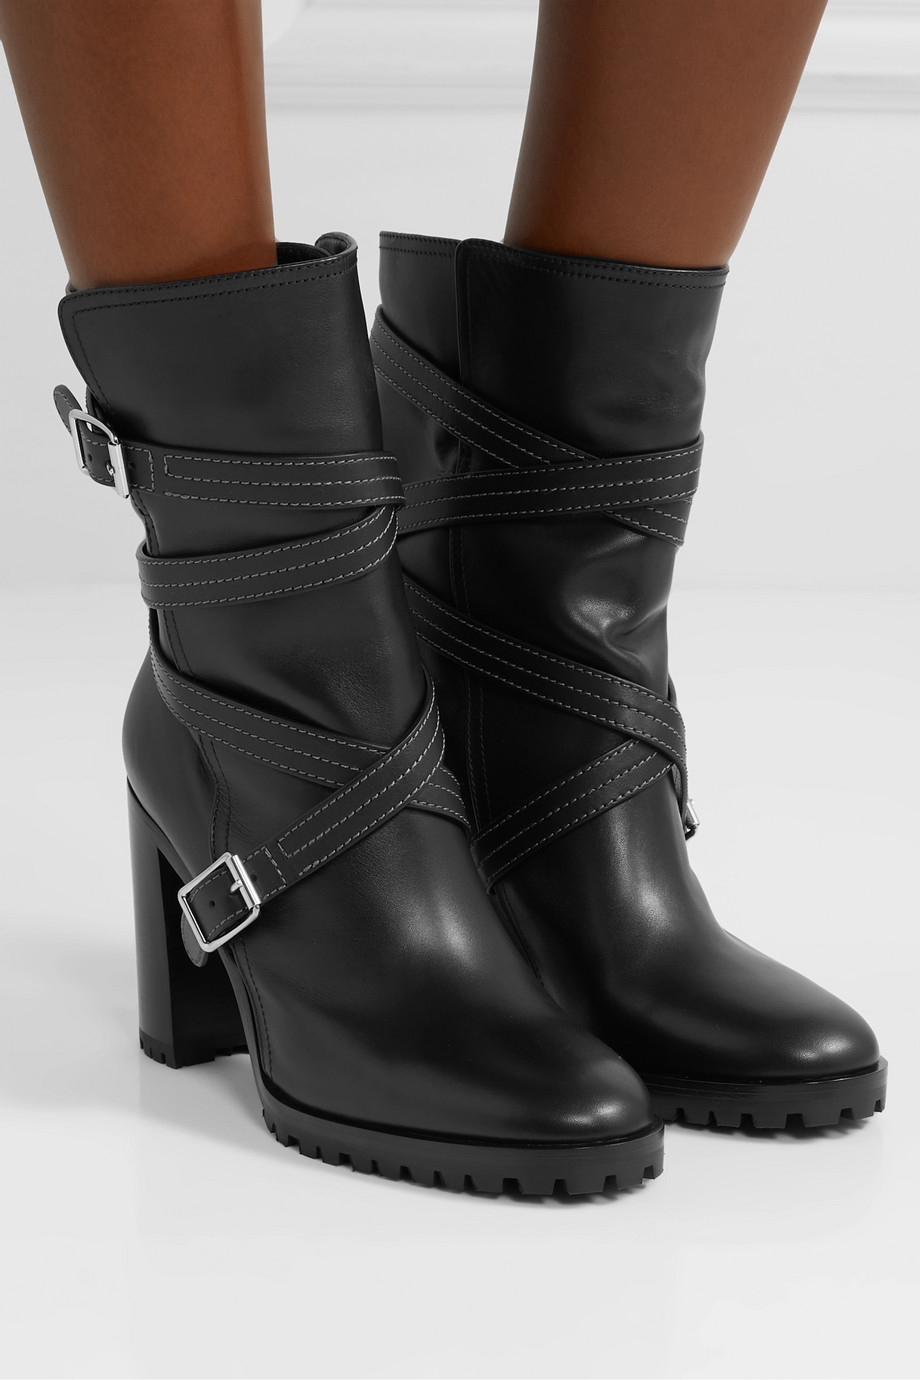 Gianvito Rossi 90 buckled leather ankle boots